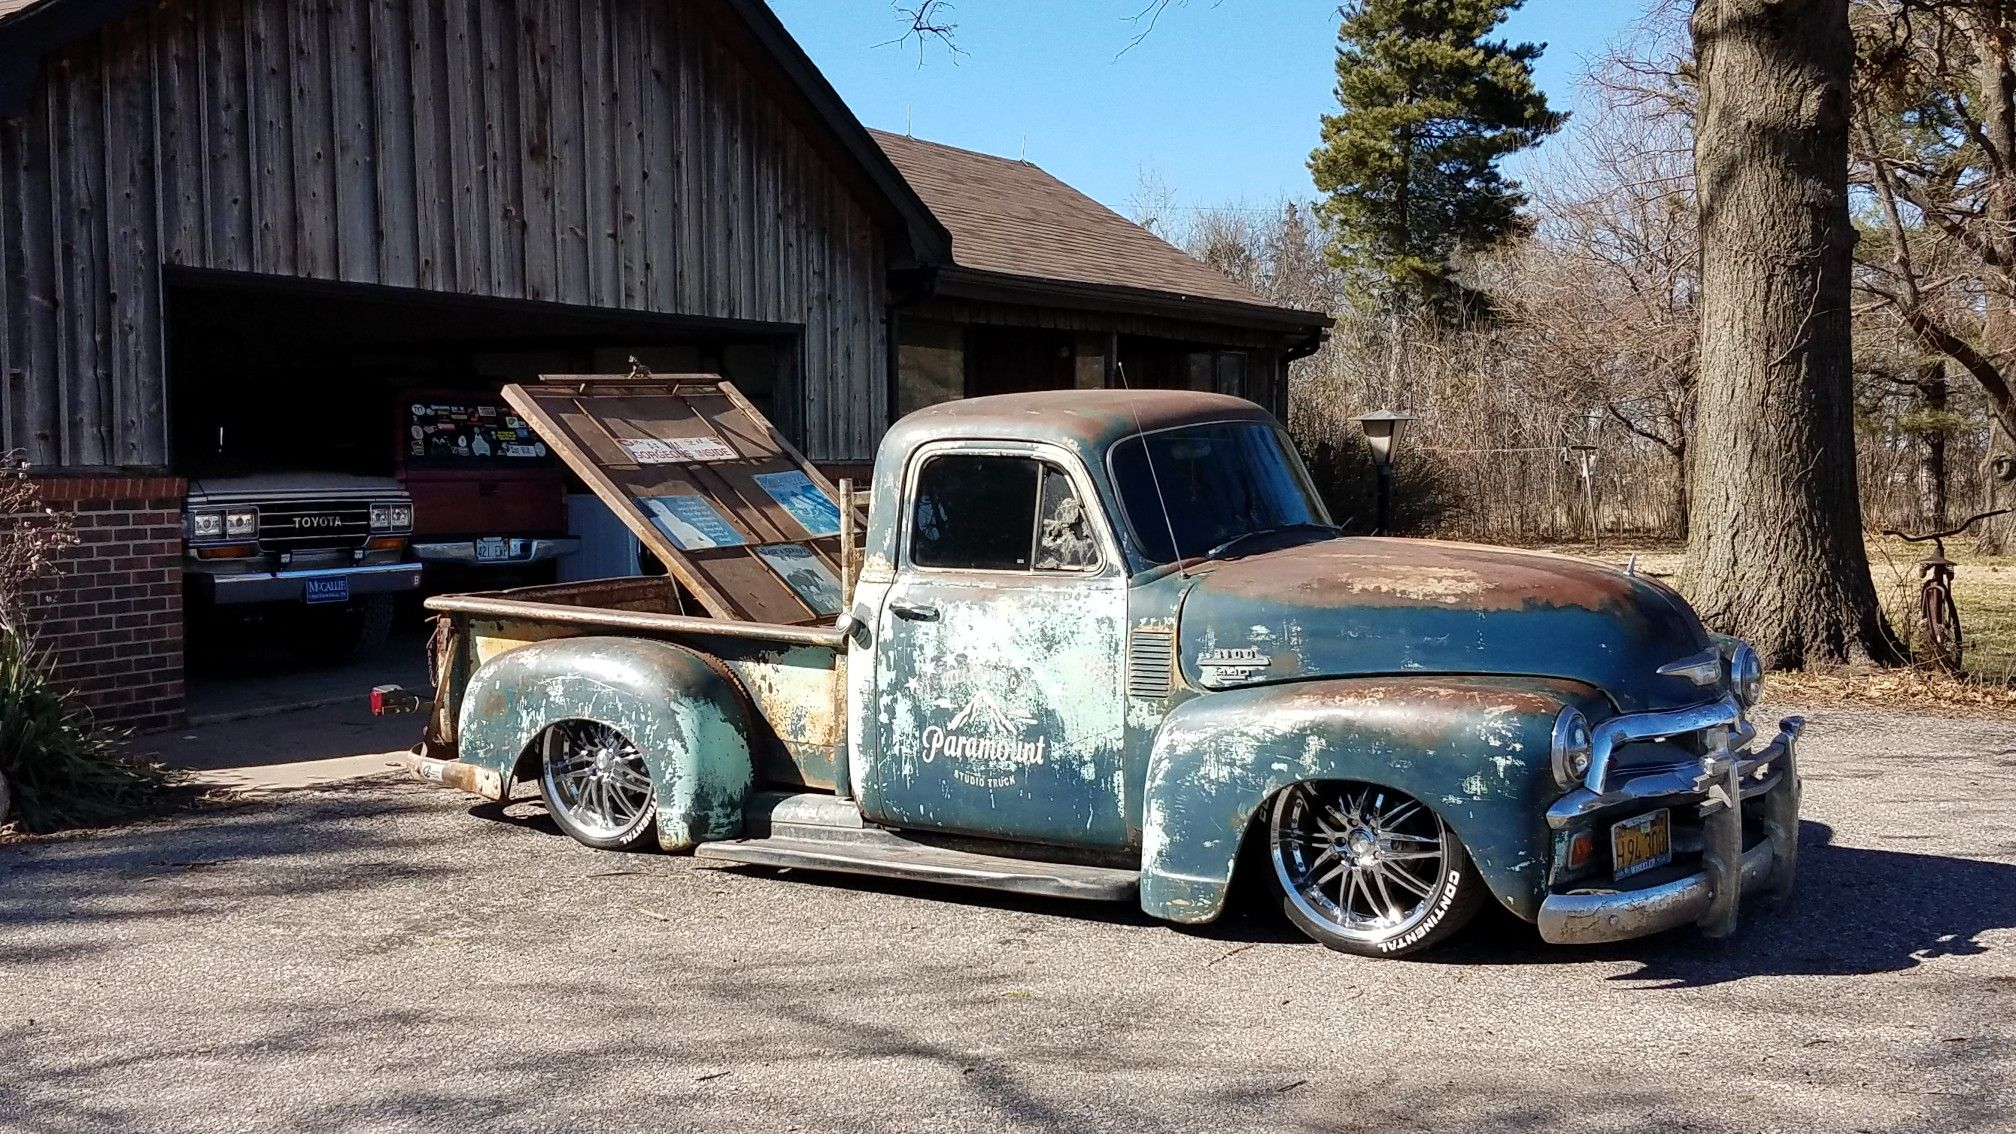 1954 Chevy 3100 with 89 s10 frame, air bags, 4 link, 10 bolt rear